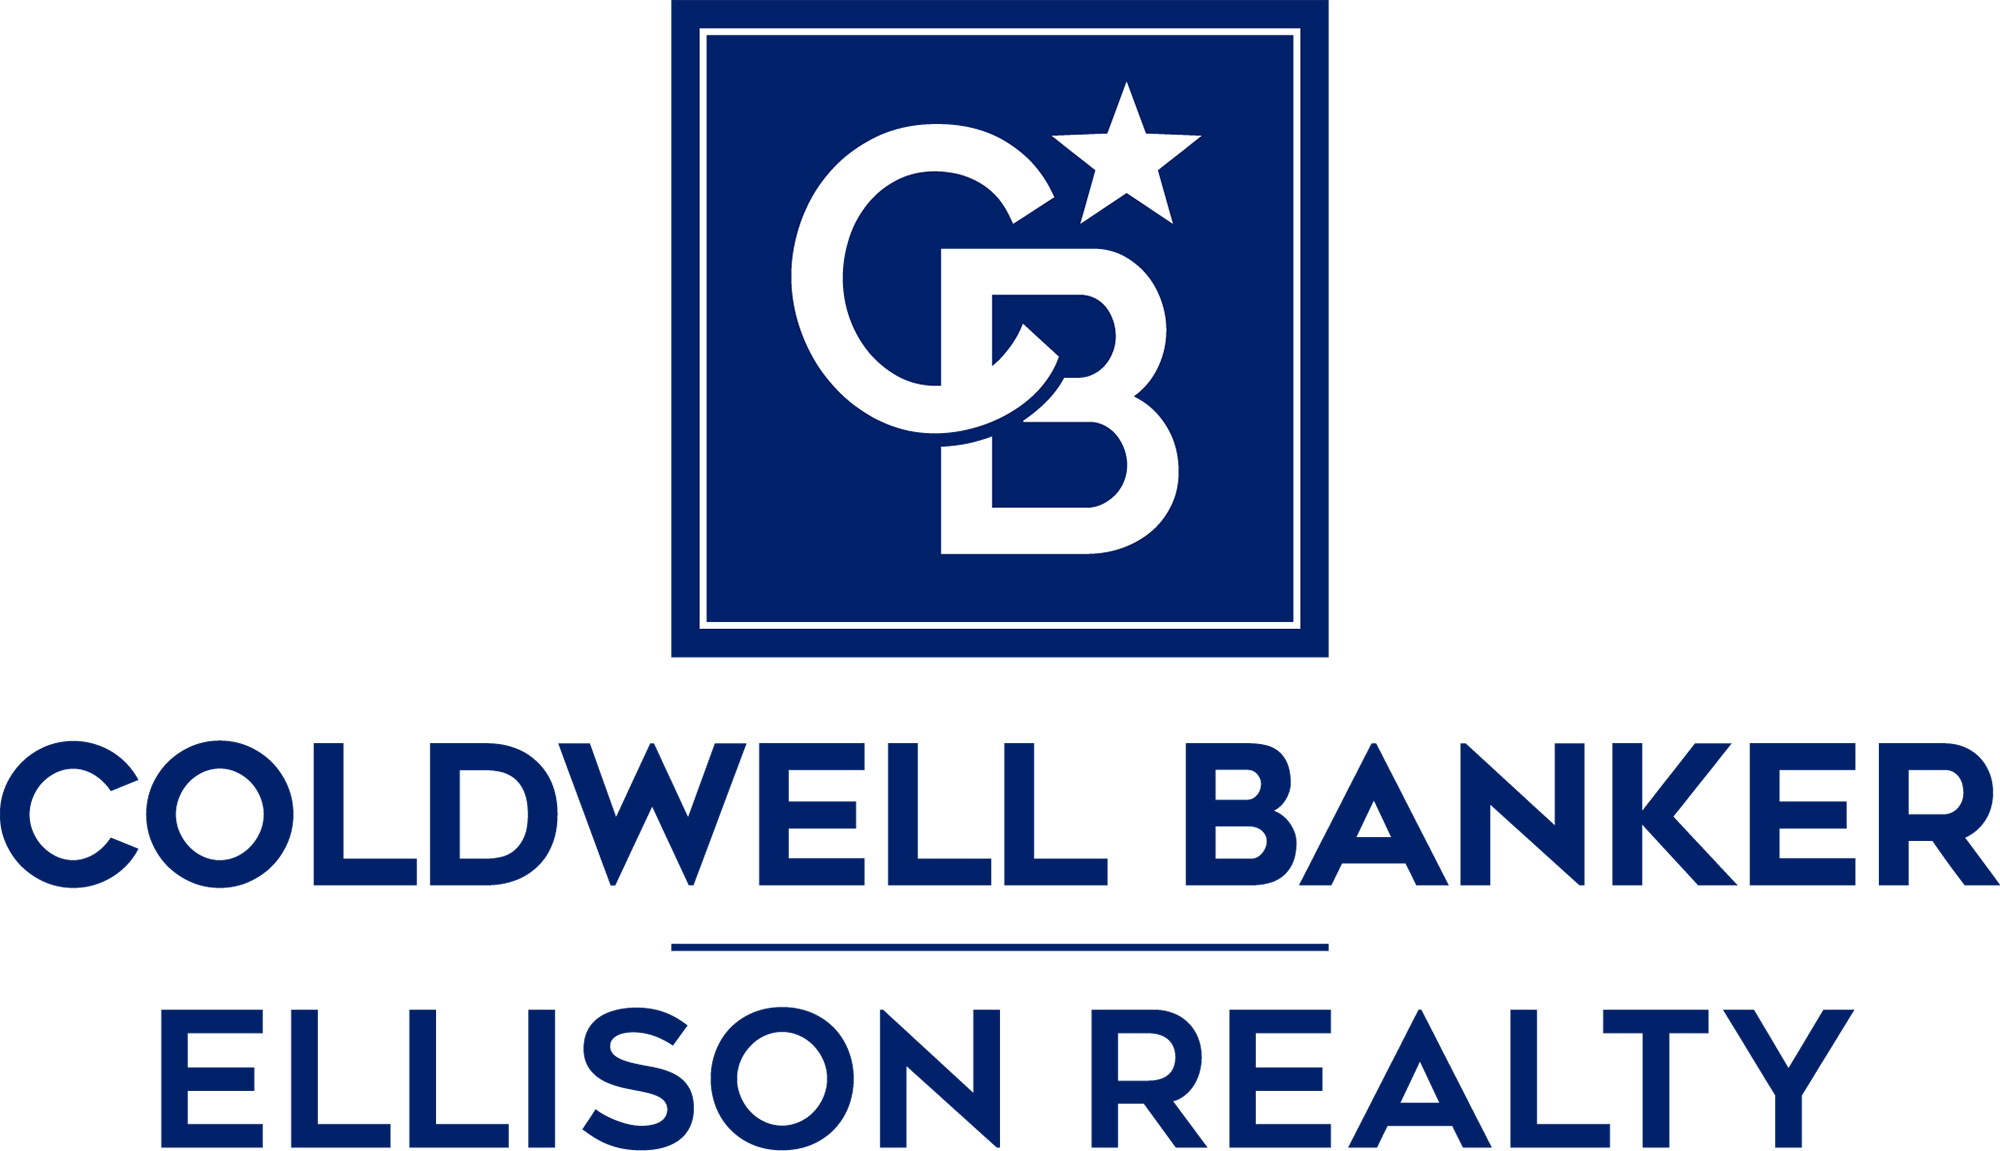 Mary Anthony - Coldwell Banker Ellison Realty Logo